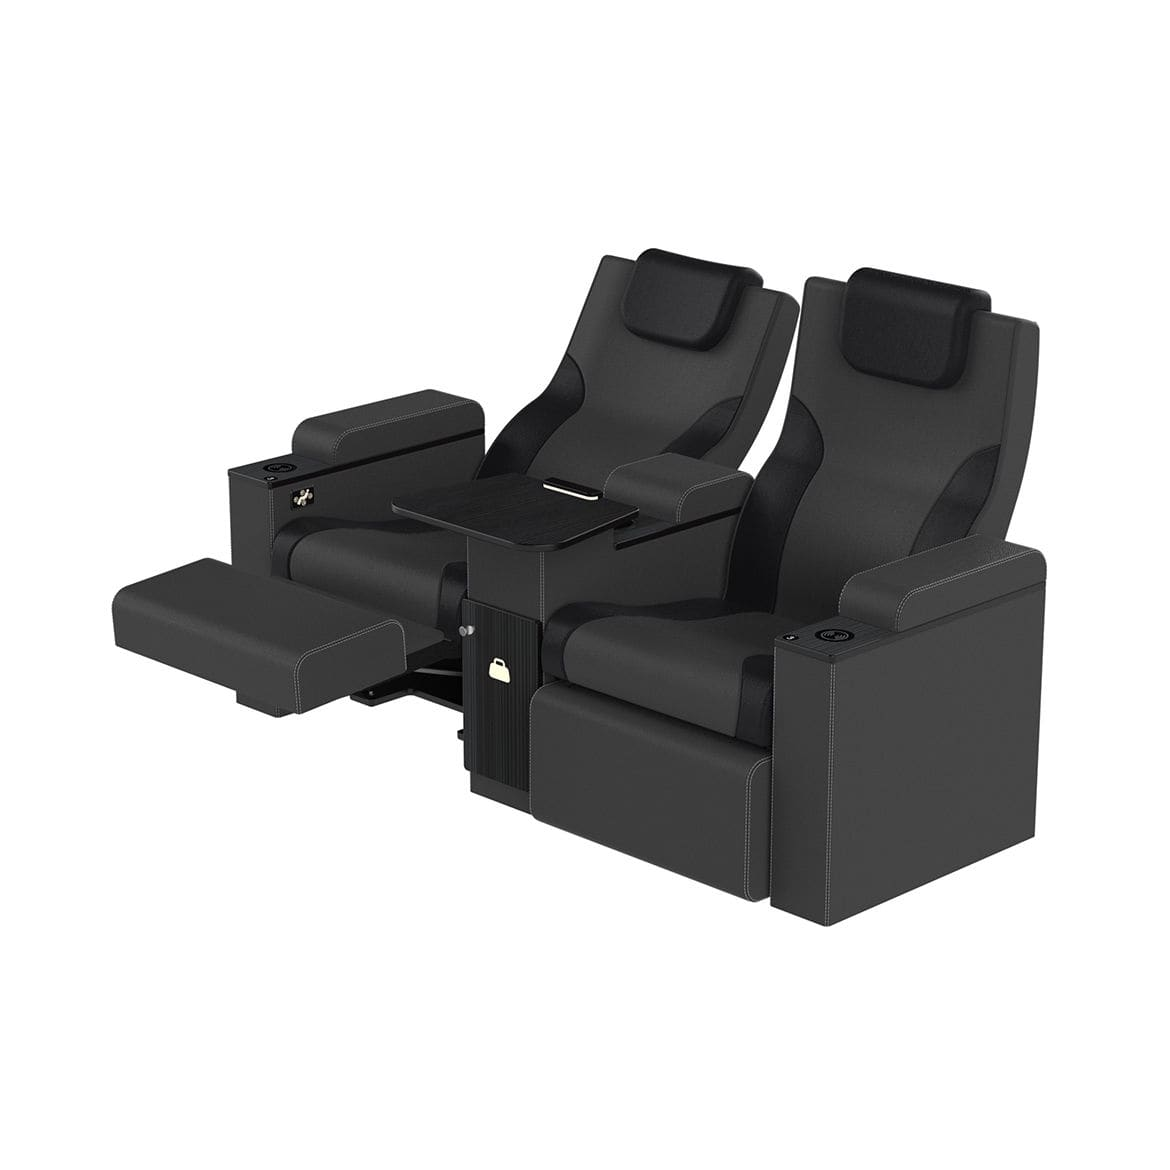 Pleasant Fabric Cinema Seating Leather Synthetic Leather With Evergreenethics Interior Chair Design Evergreenethicsorg